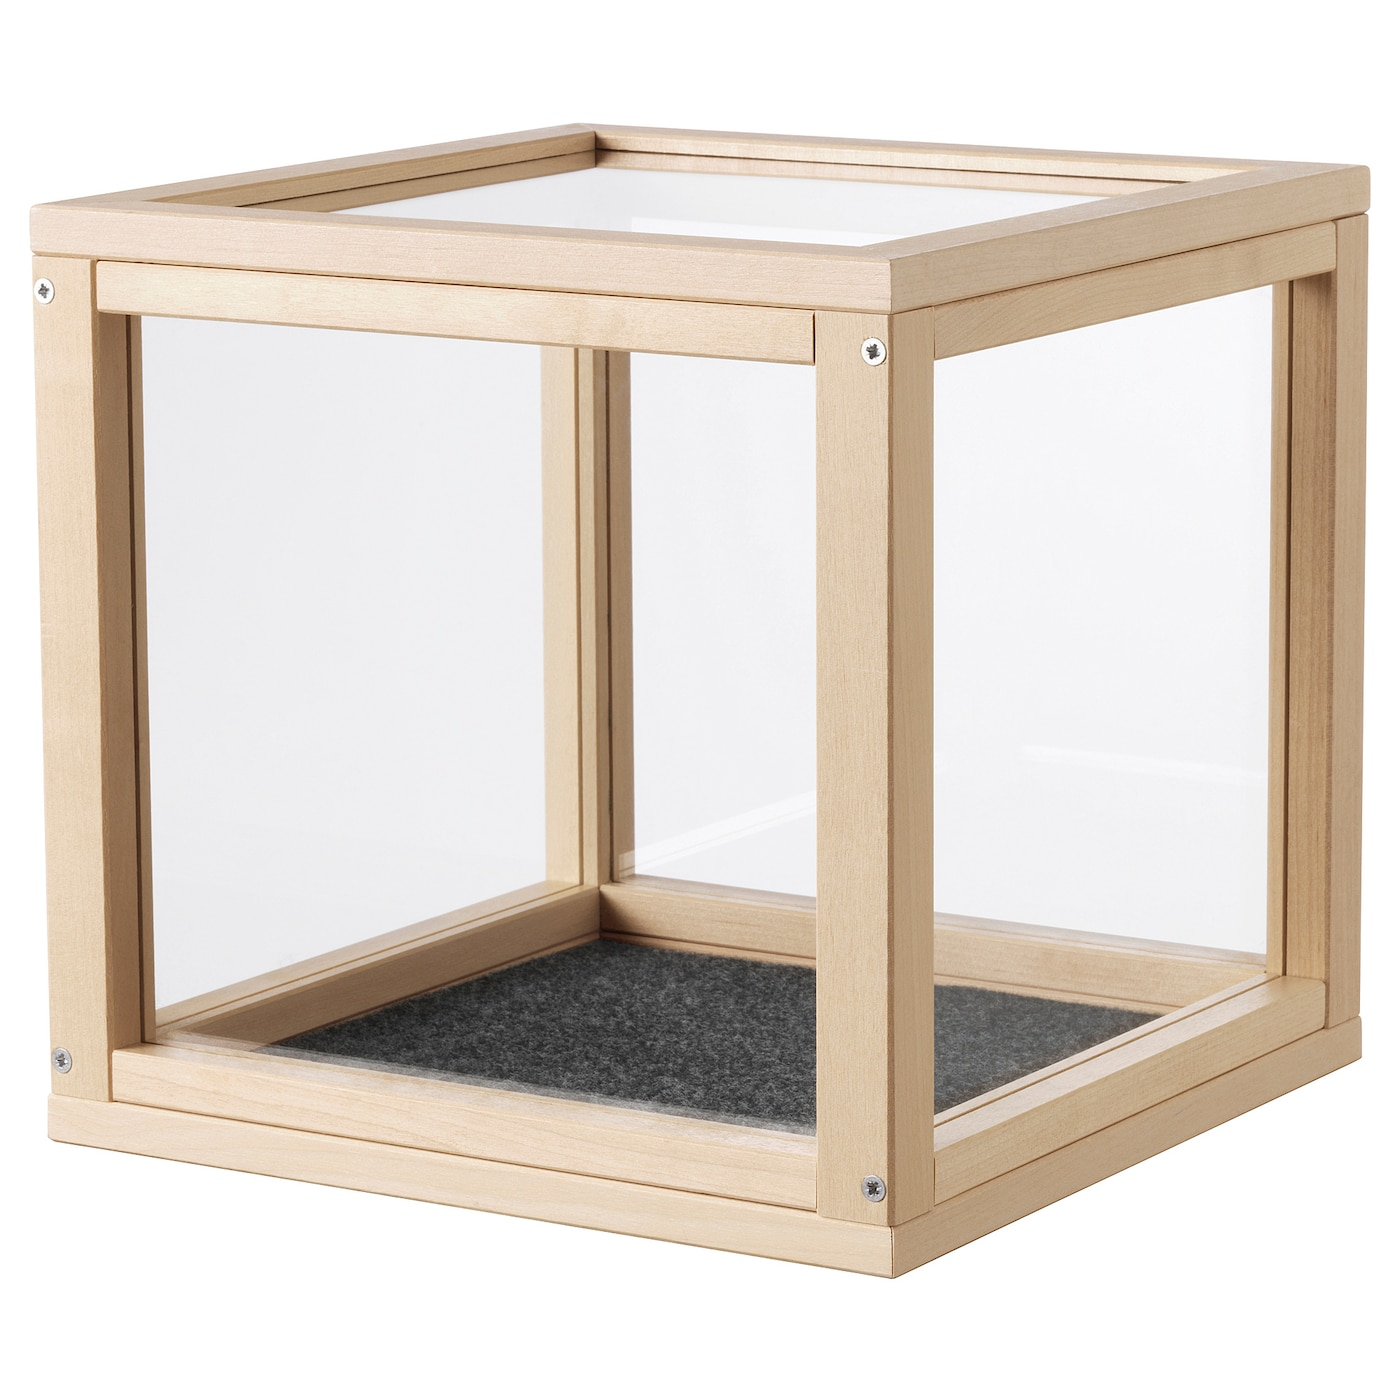 IKEA SAMMANHANG display box You easily protect your fragile things by using the included felt pad.